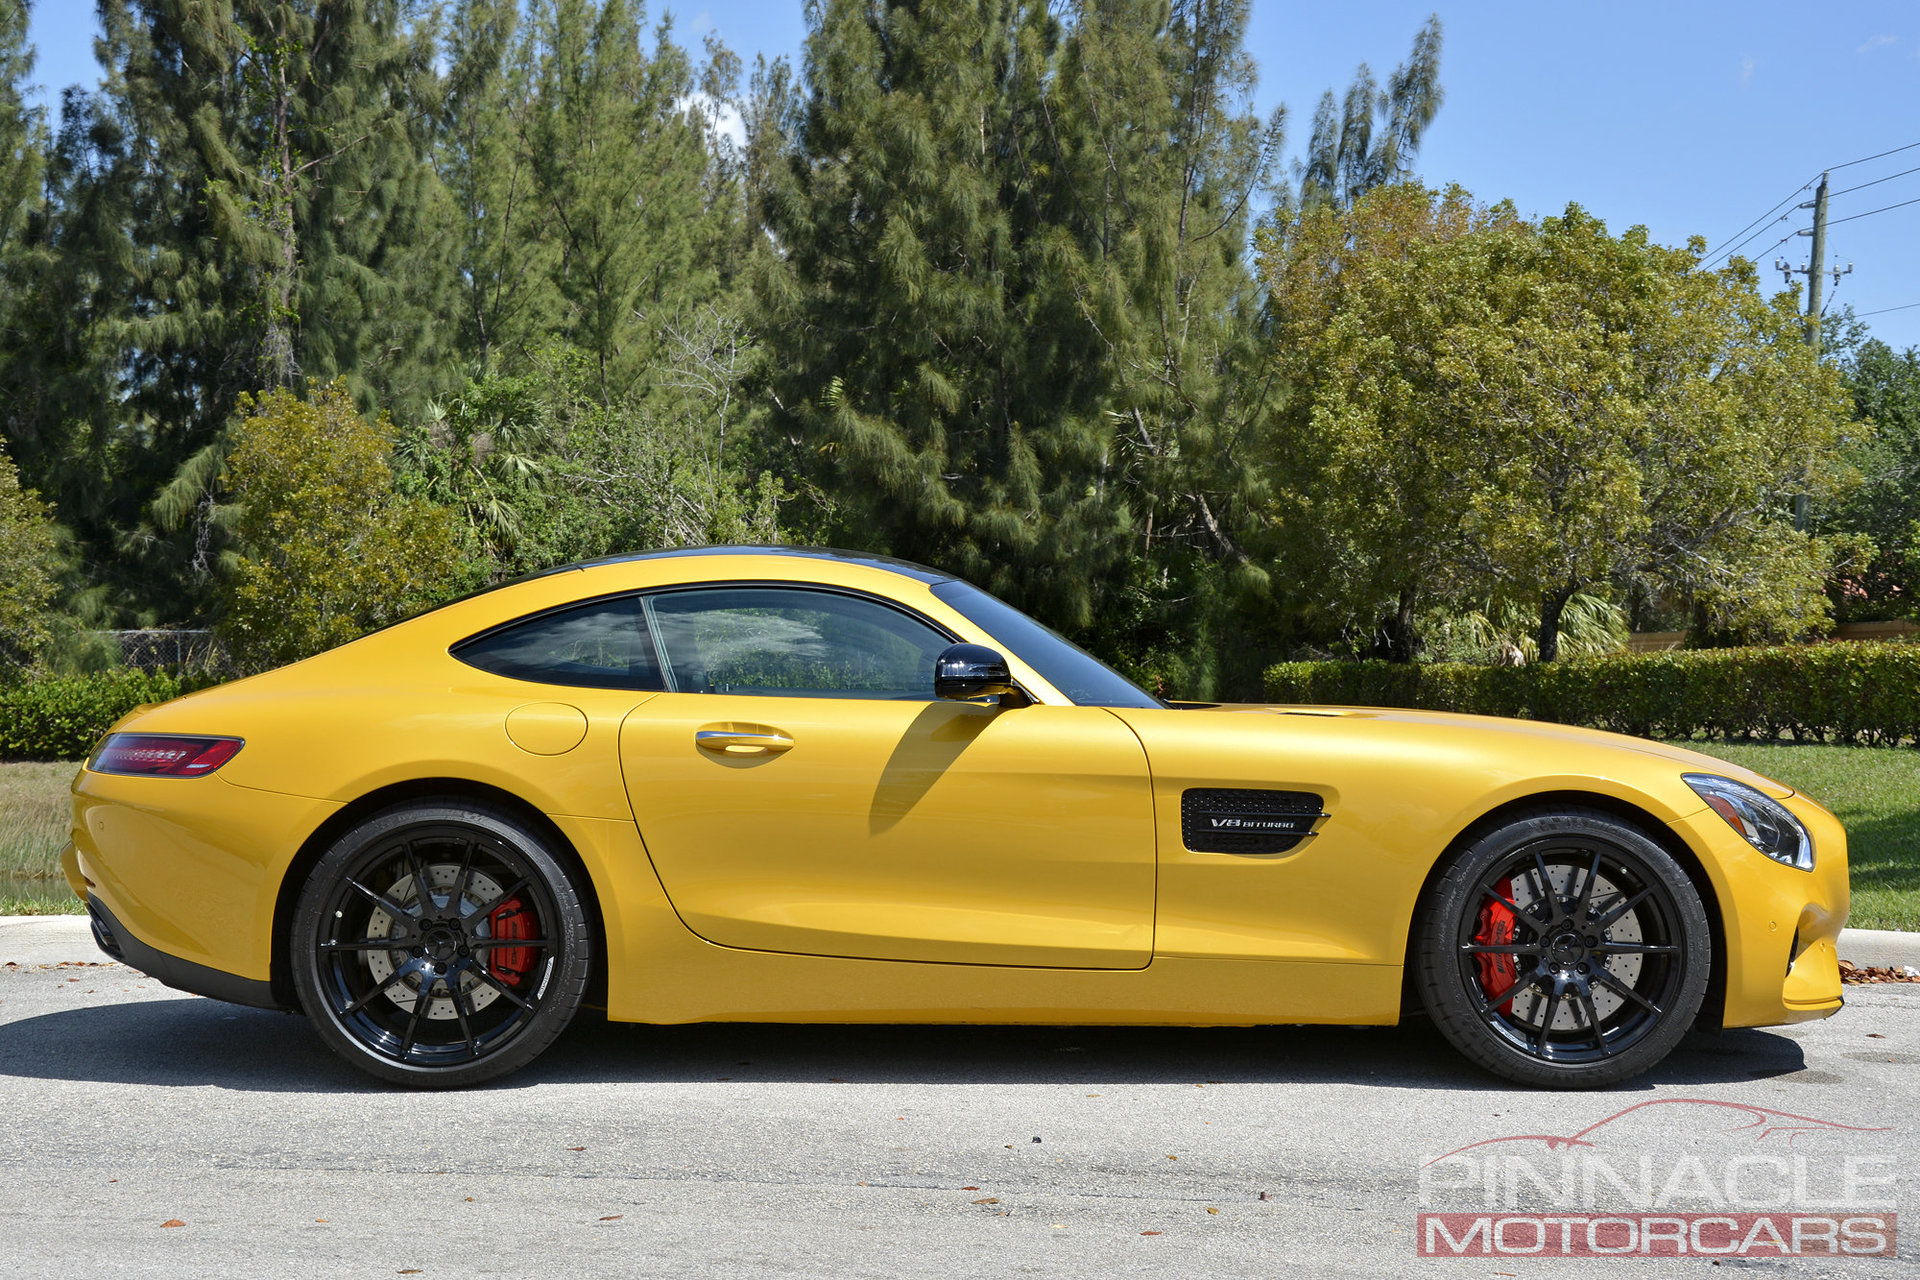 2016 Mercedes-Benz AMG GT-S for sale #85569 | MCG